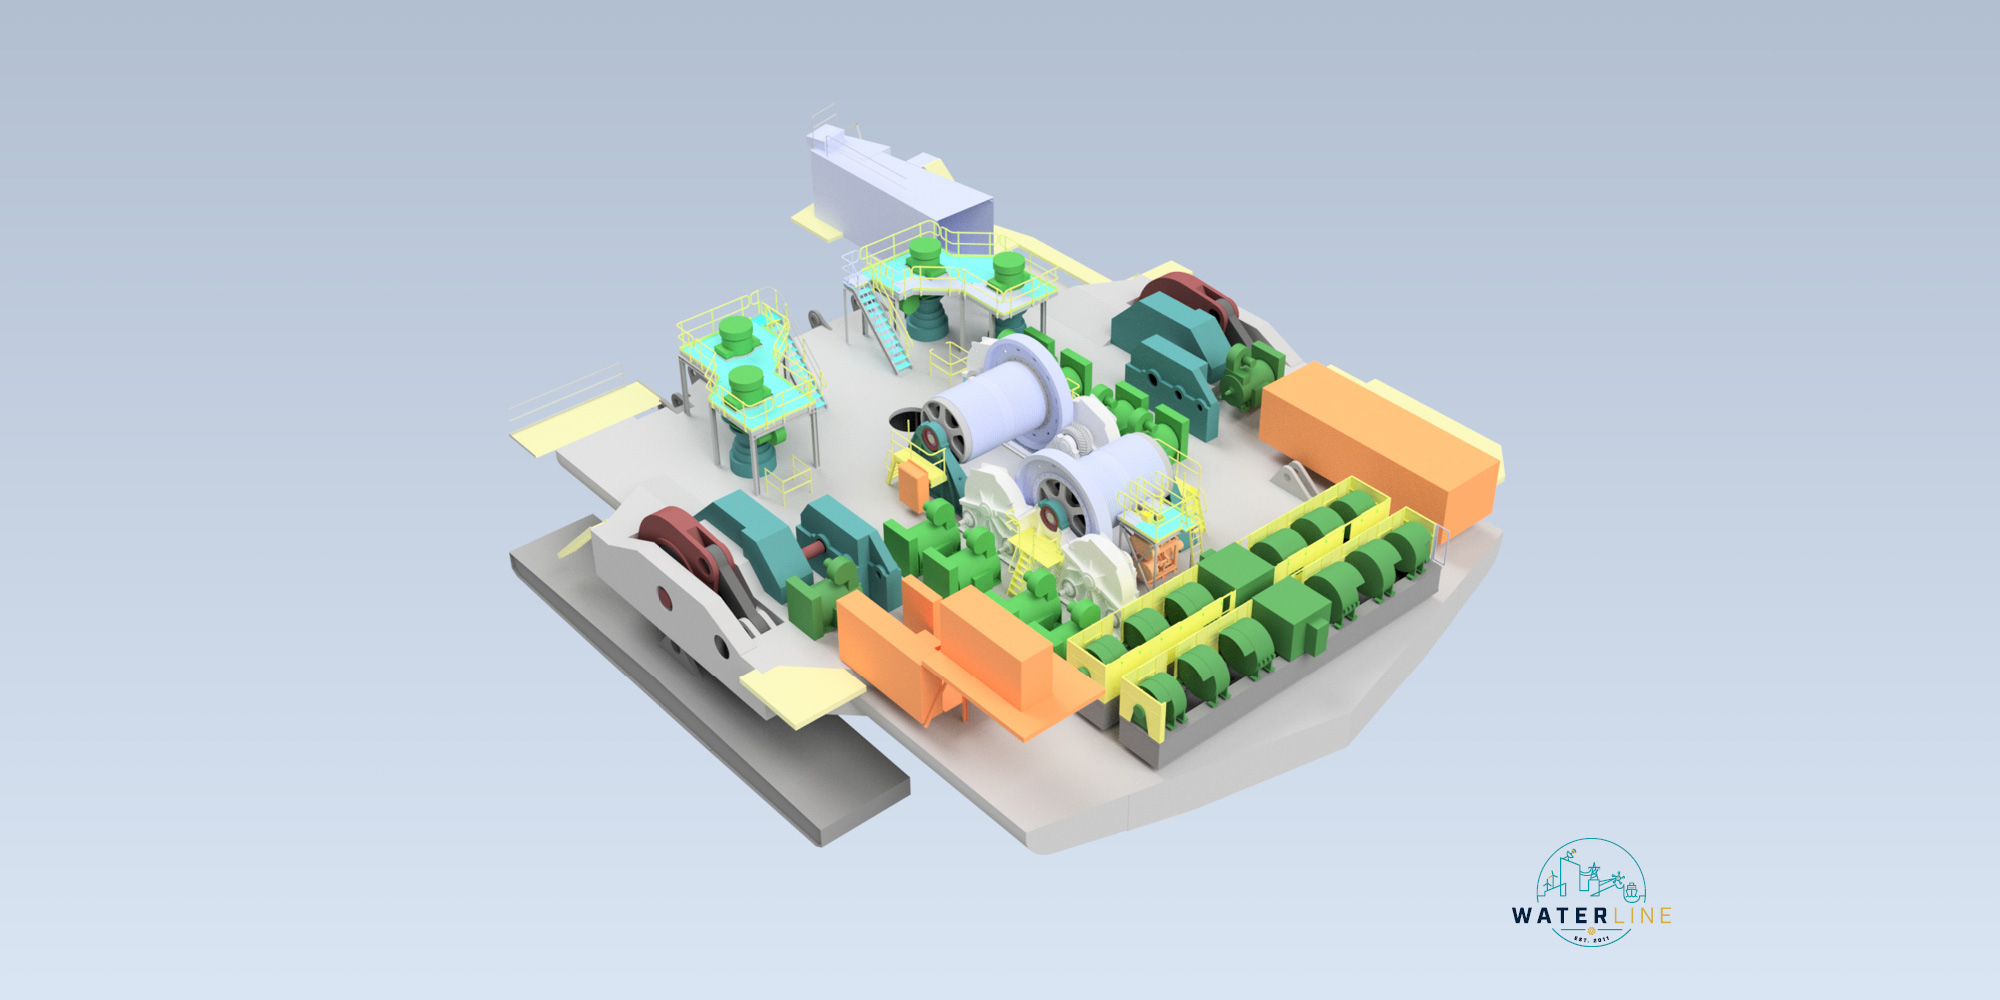 Part of the 3D model created by Waterline